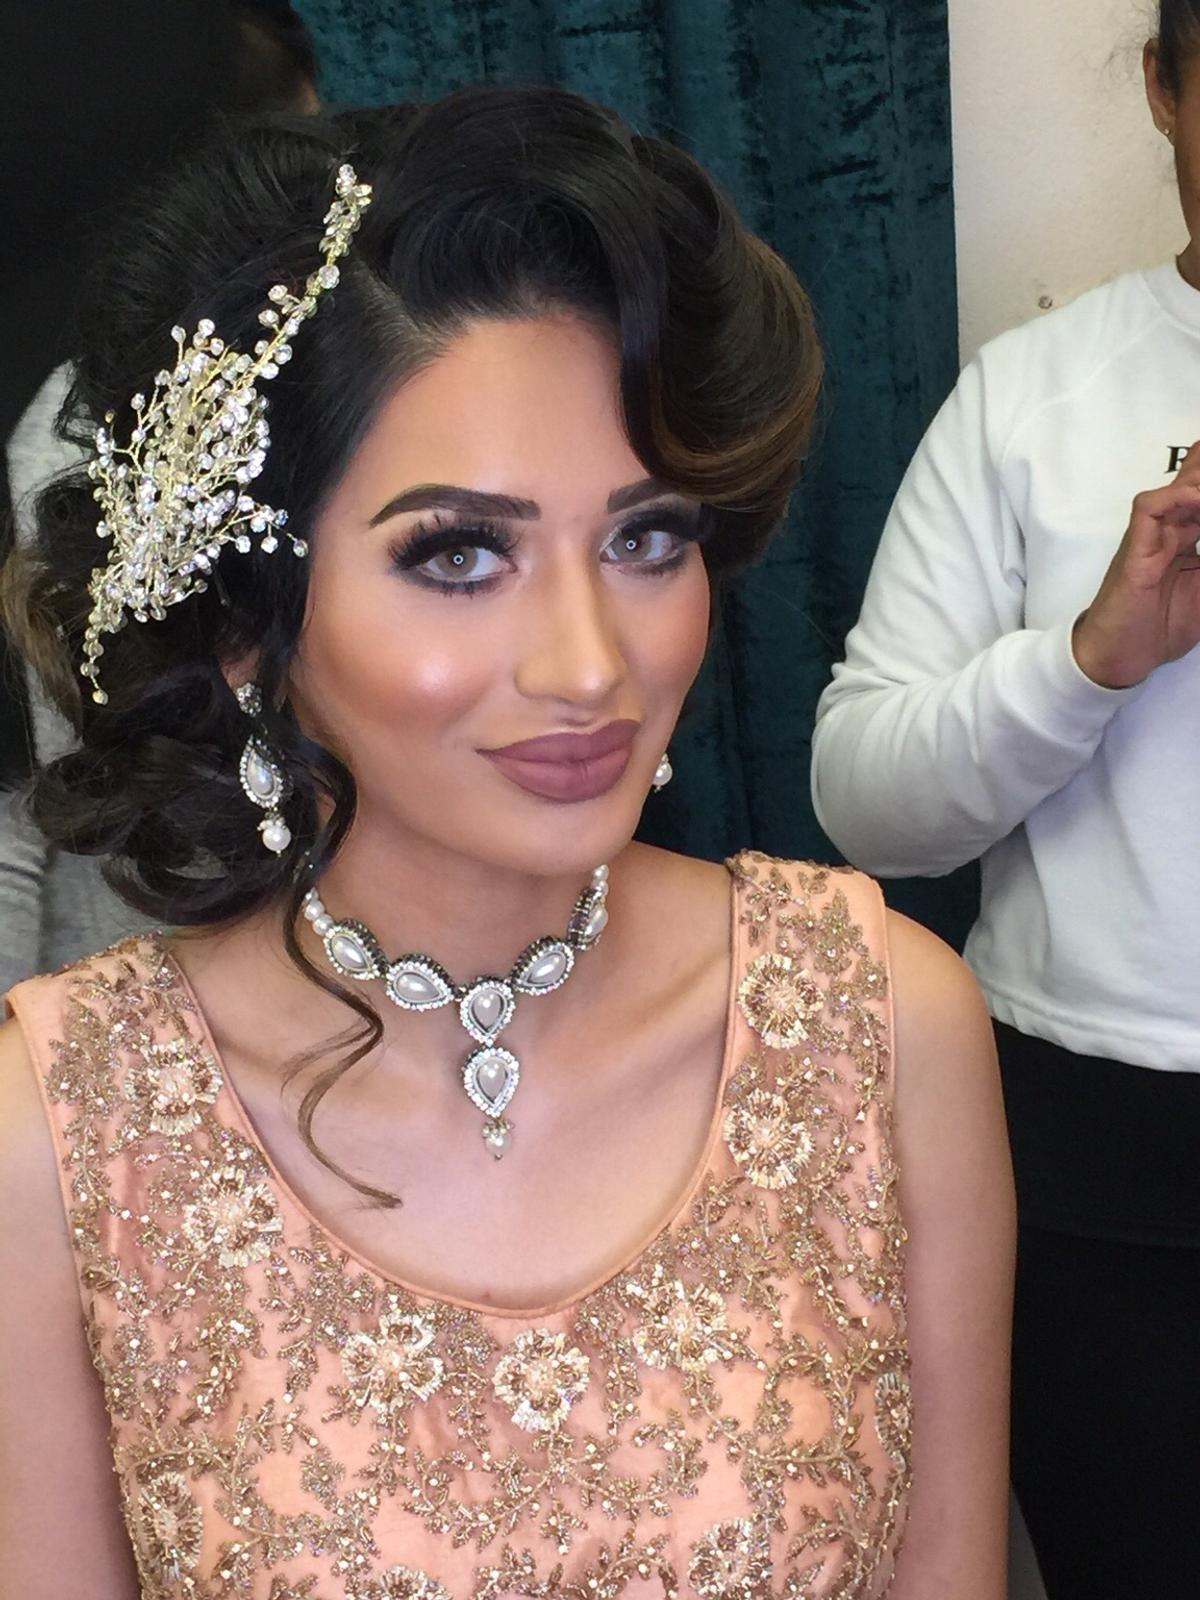 bridal party makeup artist hairstylist in ig11 dagenham für